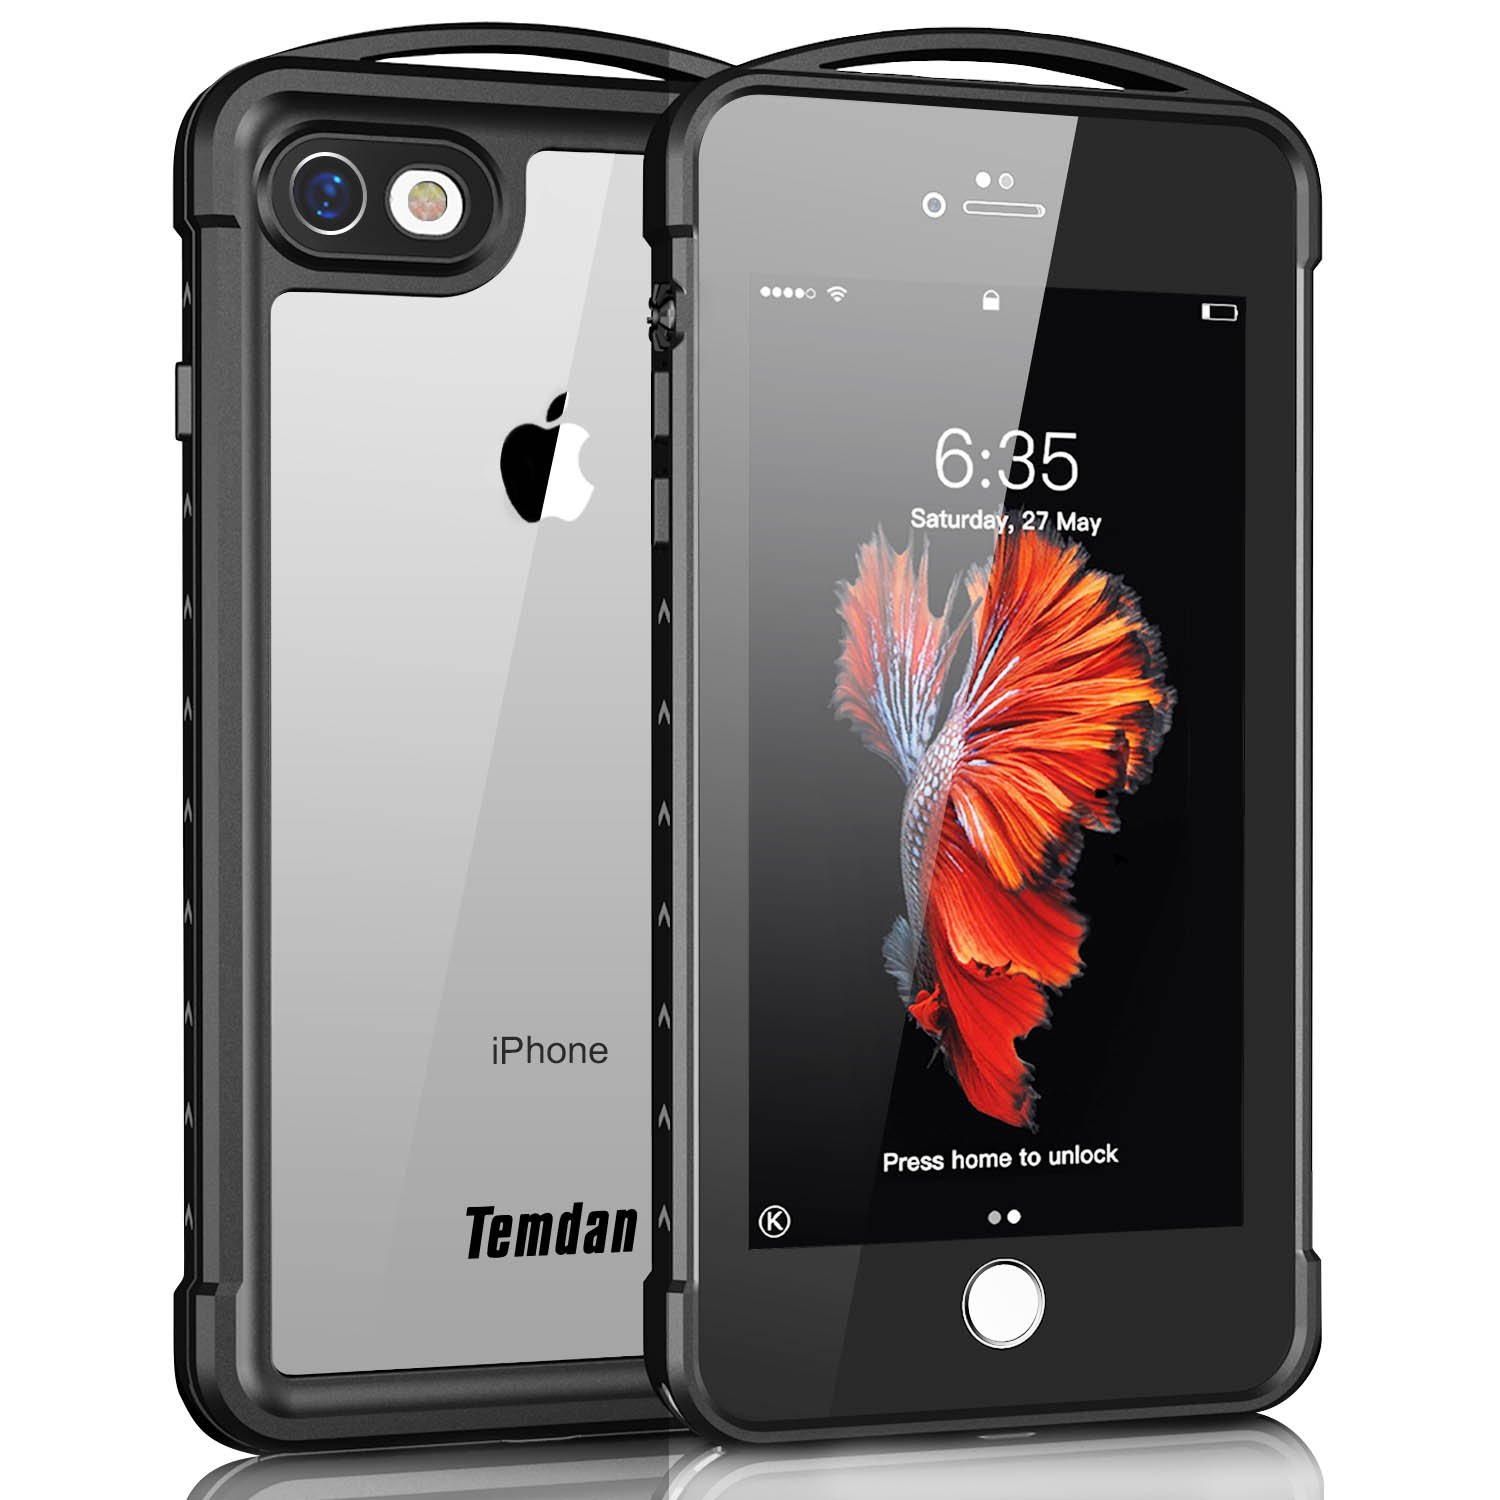 iPhone 7/8 Waterproof Case, Temdan Supreme Series Waterproof Case with Carabiner Built in Screen Protector Outdoor Rugged Shockproof Clear Case for iPhone 7 and iPhone 8 (4.7 inch) by Temdan (Image #1)